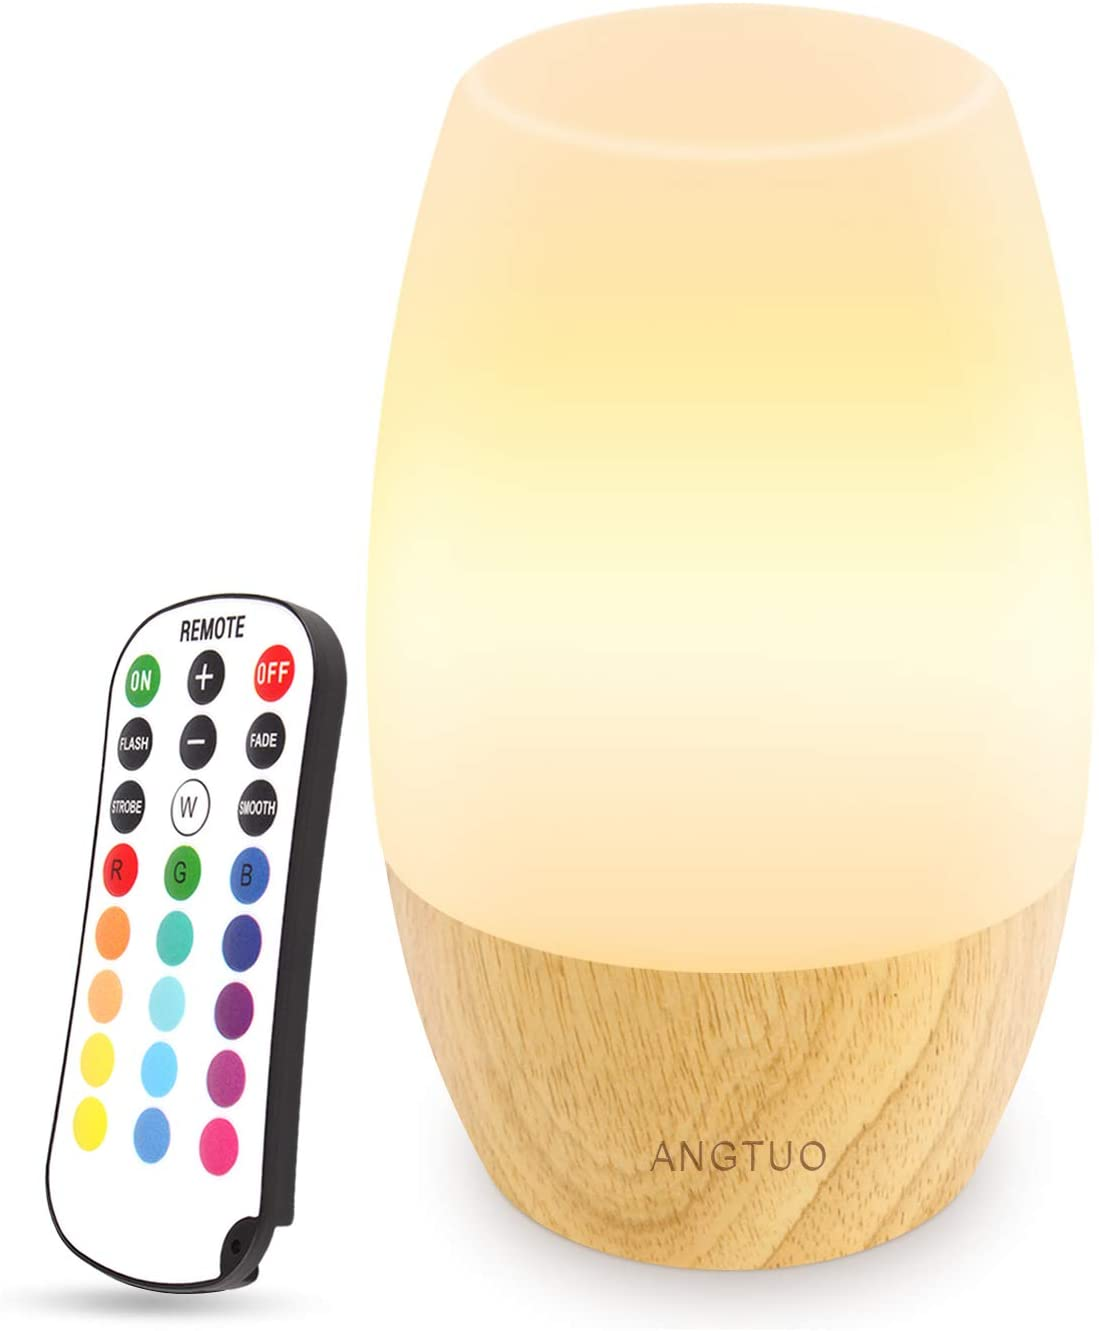 ANGTUO LED Wooden Best Nursery Night Light